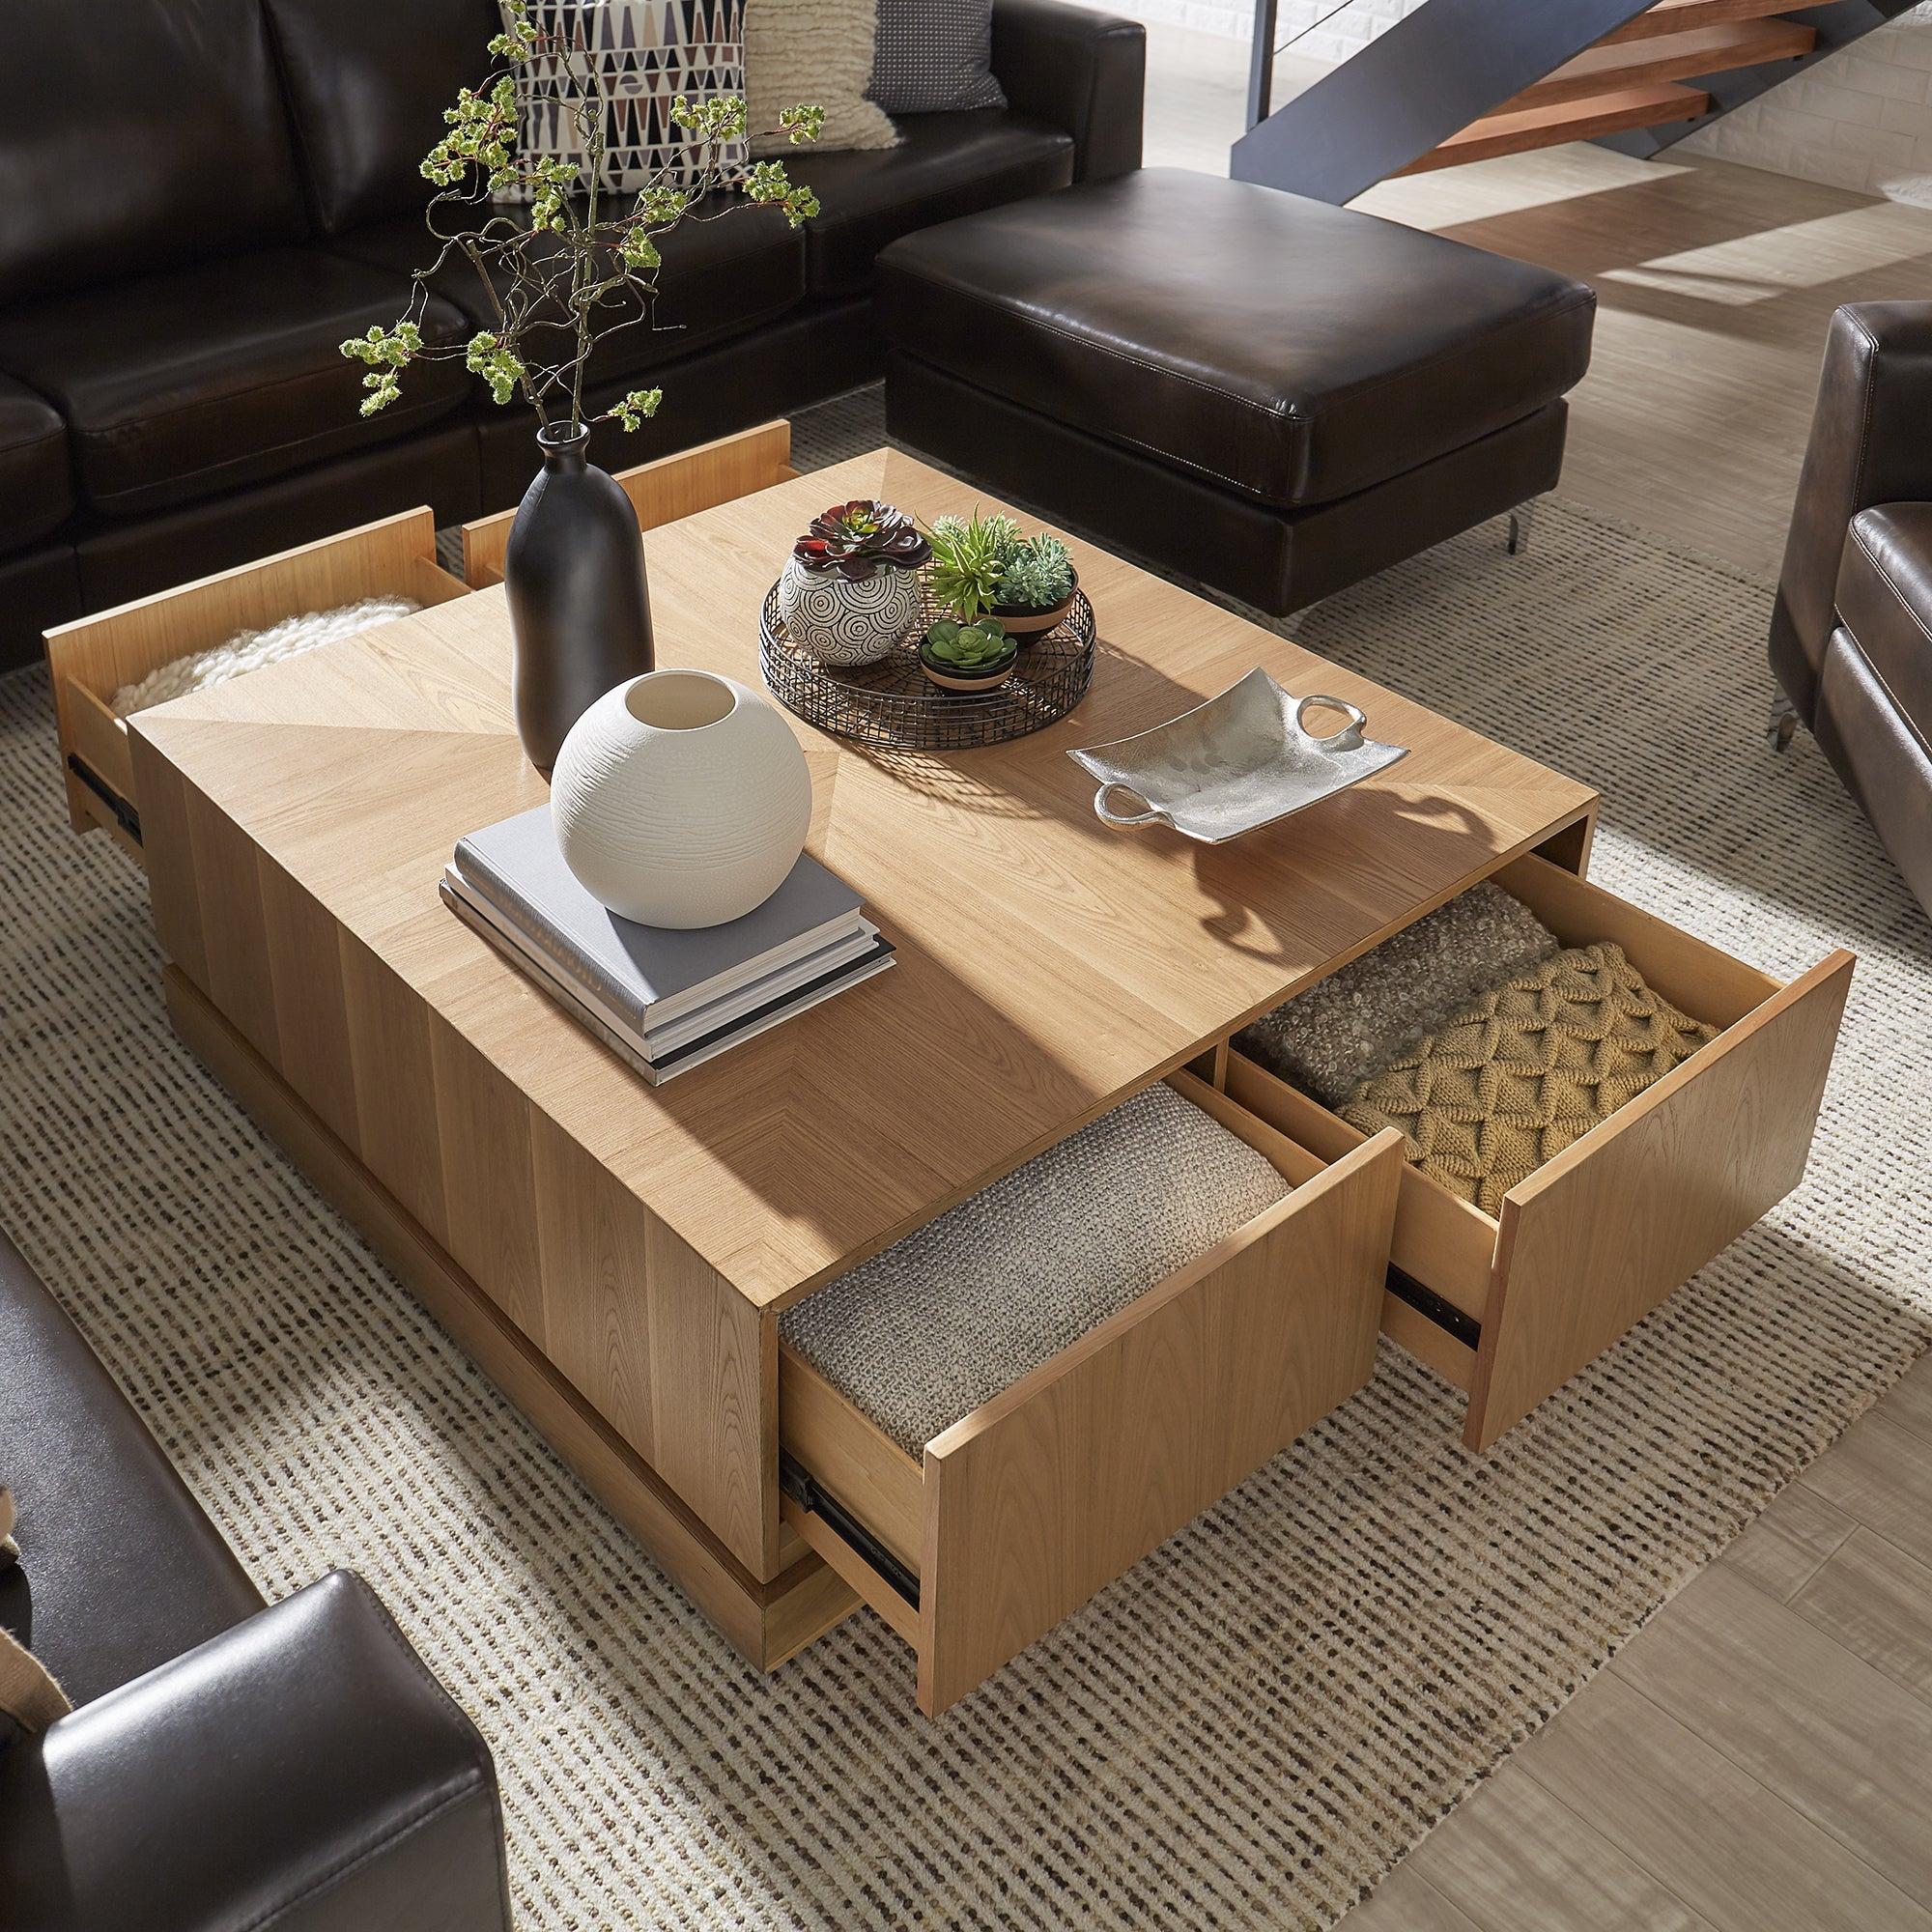 Hadley 4-Drawer Mid-Century Wood Coffee Table By INSPIRE Q